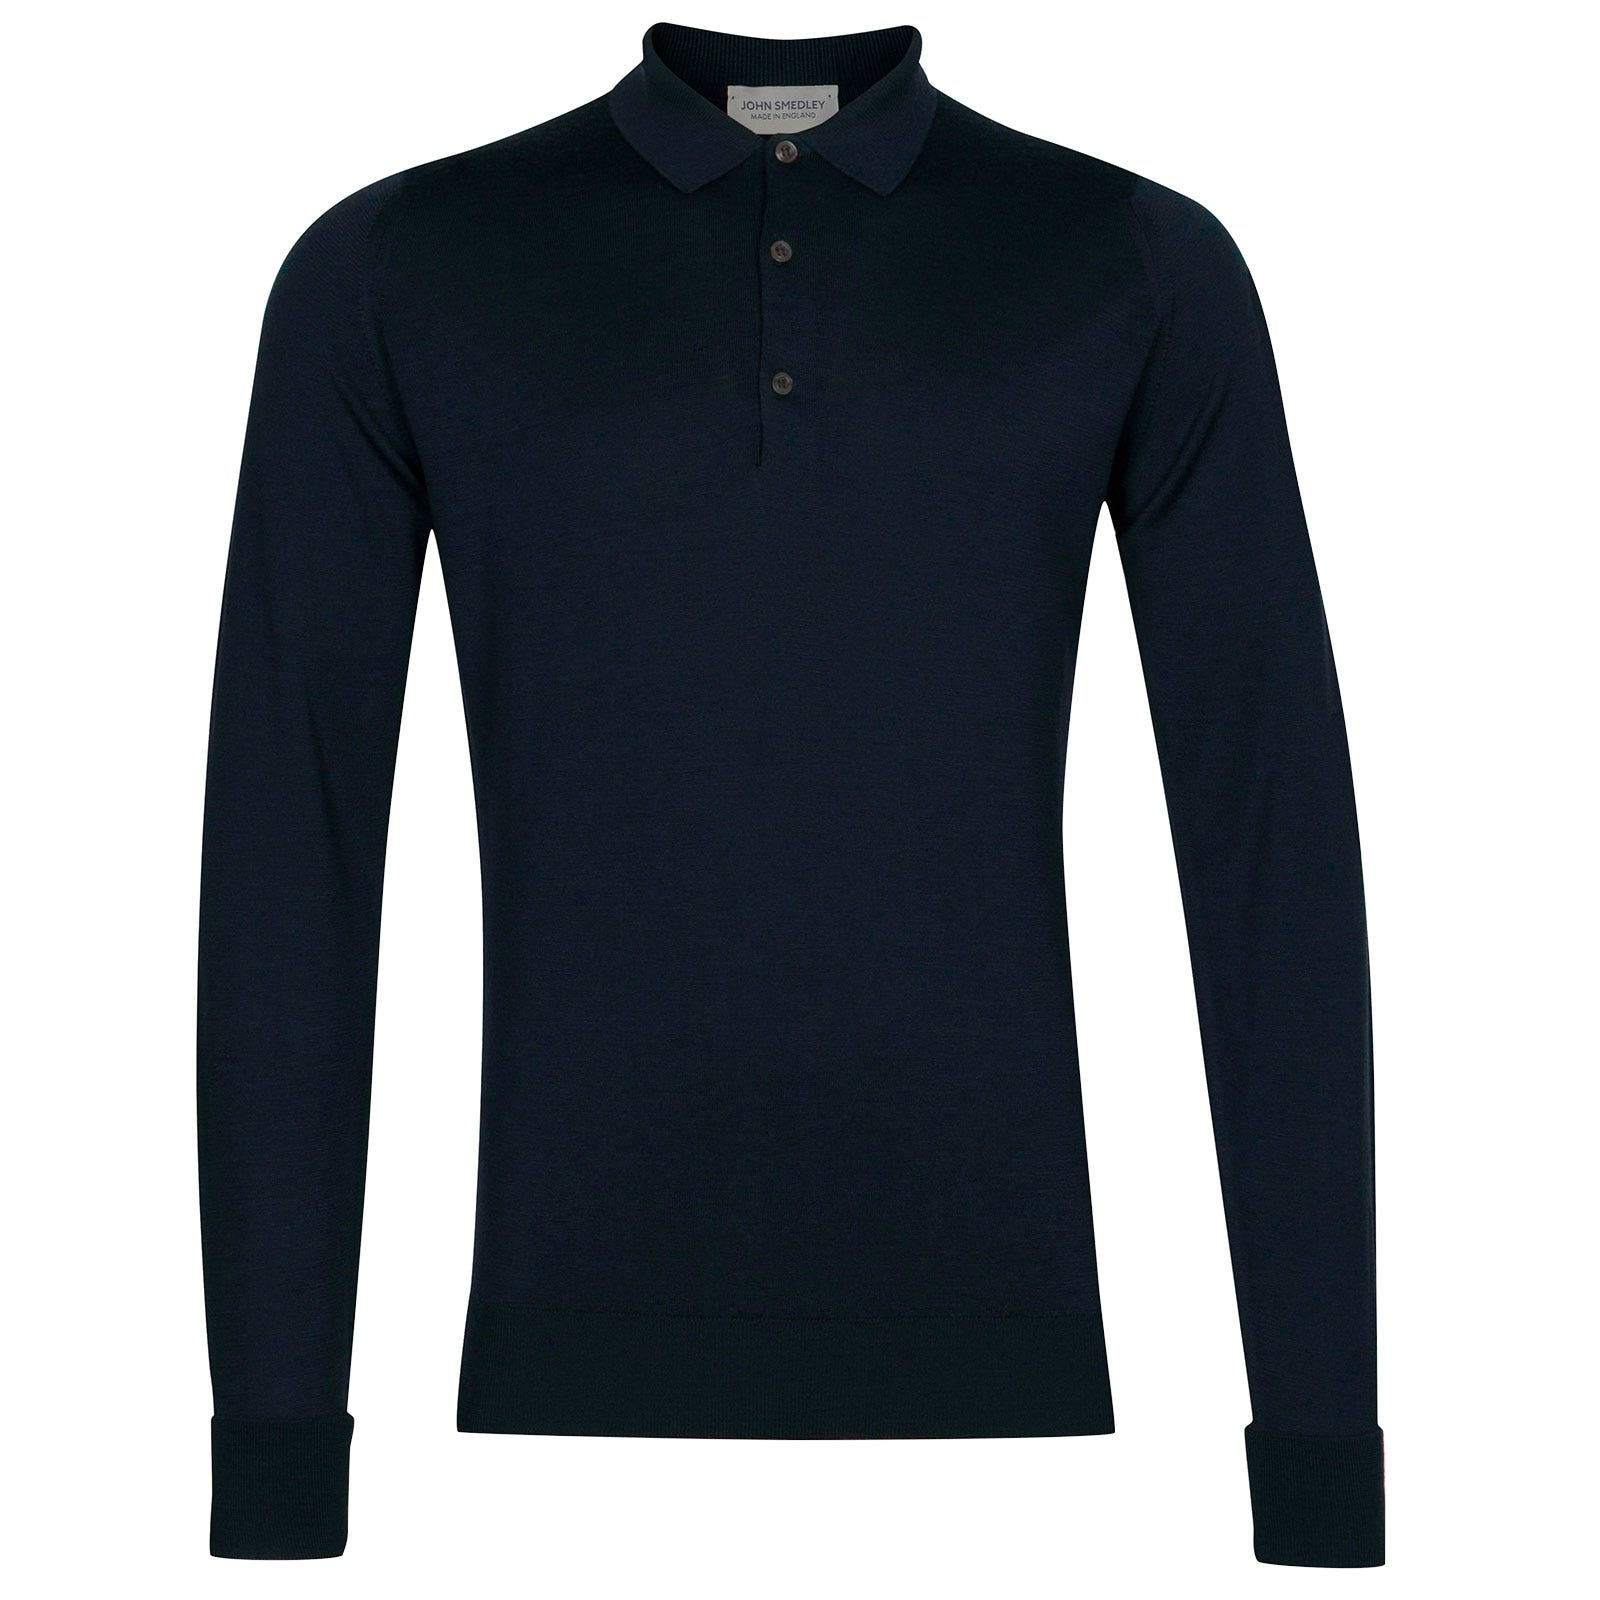 John Smedley Cotswold Merino Wool Shirt in Orion Green-L